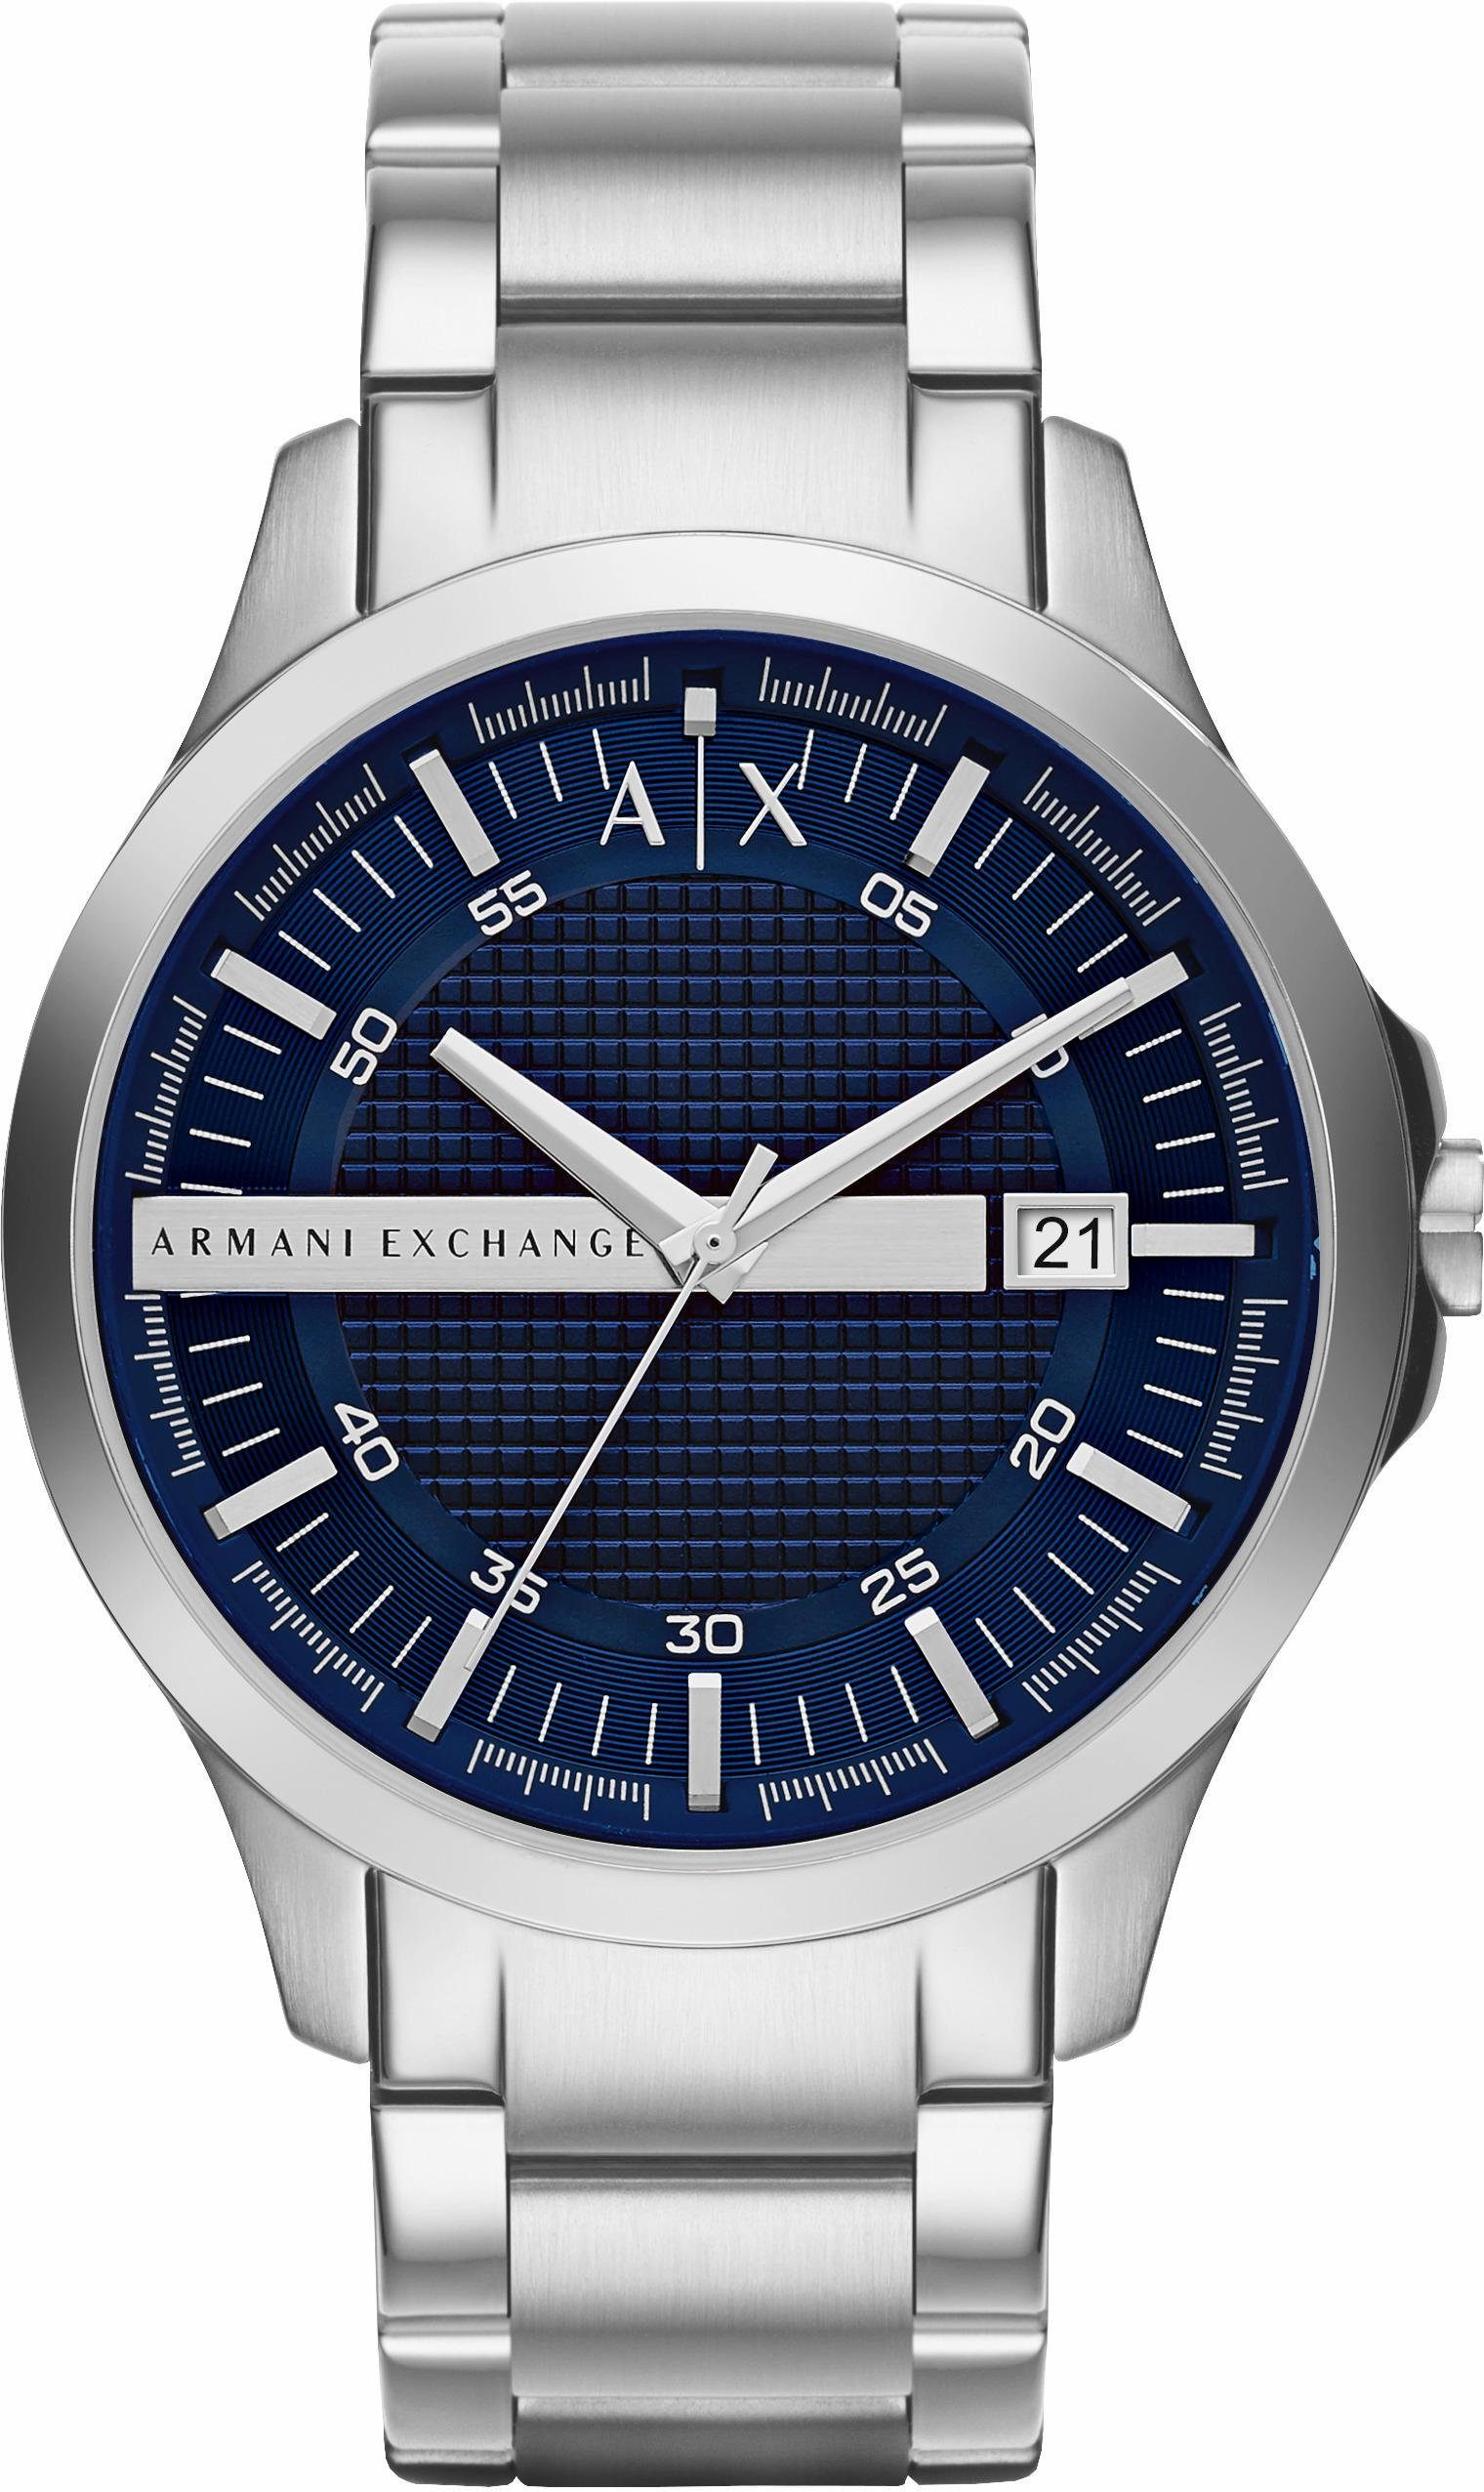 ARMANI EXCHANGE Quarzuhr »AX2132«